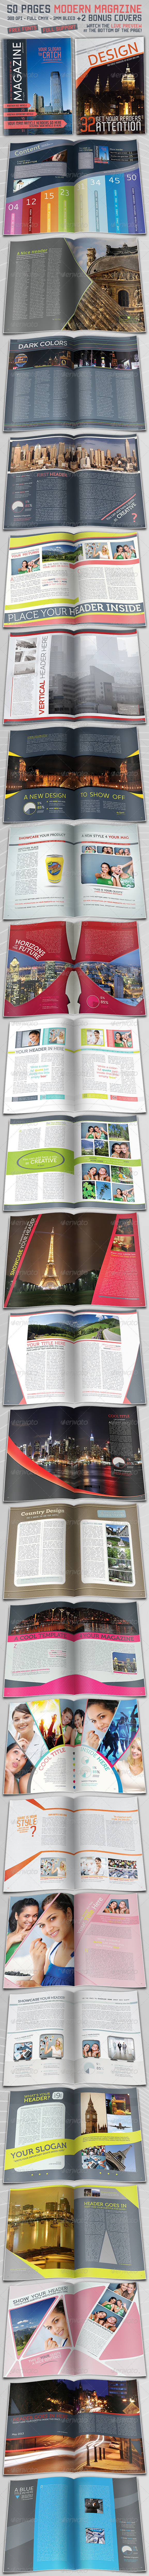 GraphicRiver 50 Page Magazine Newsletter Indesign & 2 Covers 3334773